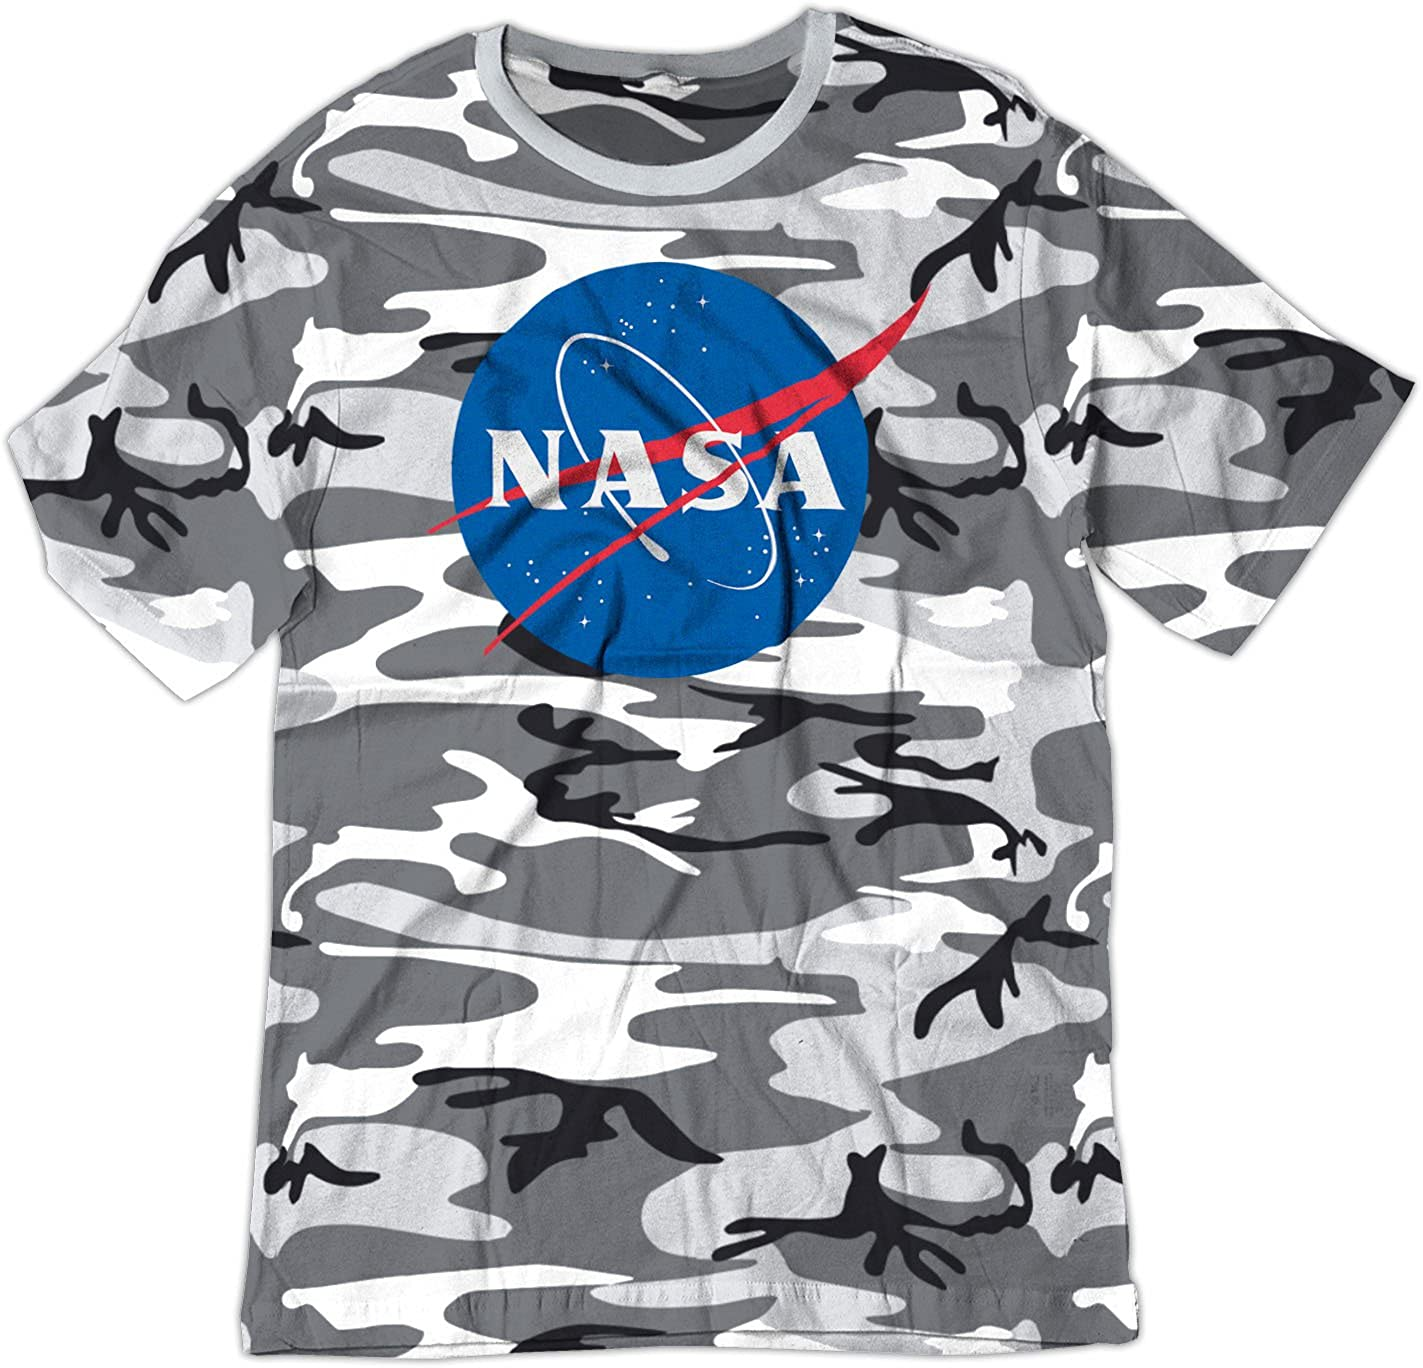 BSW YOUTH Nasa Space Astronomy Shirt 1072-2Y